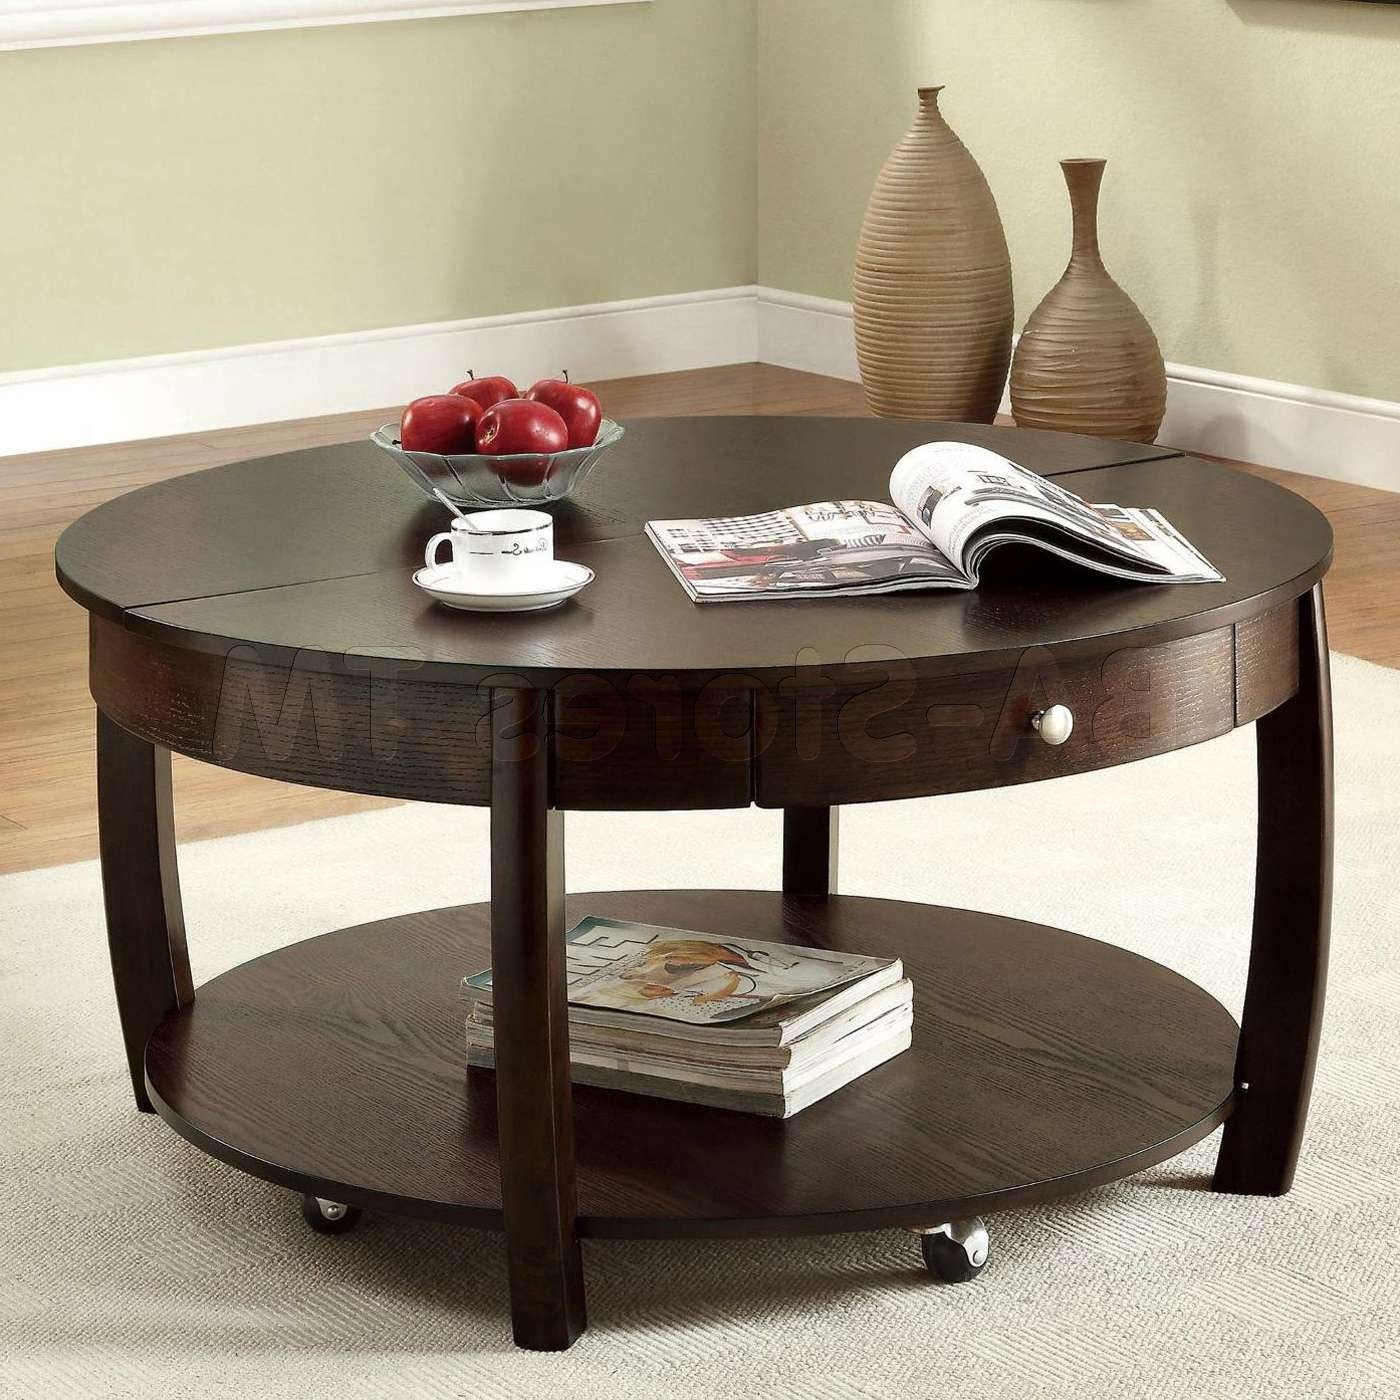 Low Coffee Table With Storage 20 Photos Small Coffee Tables With Shelf